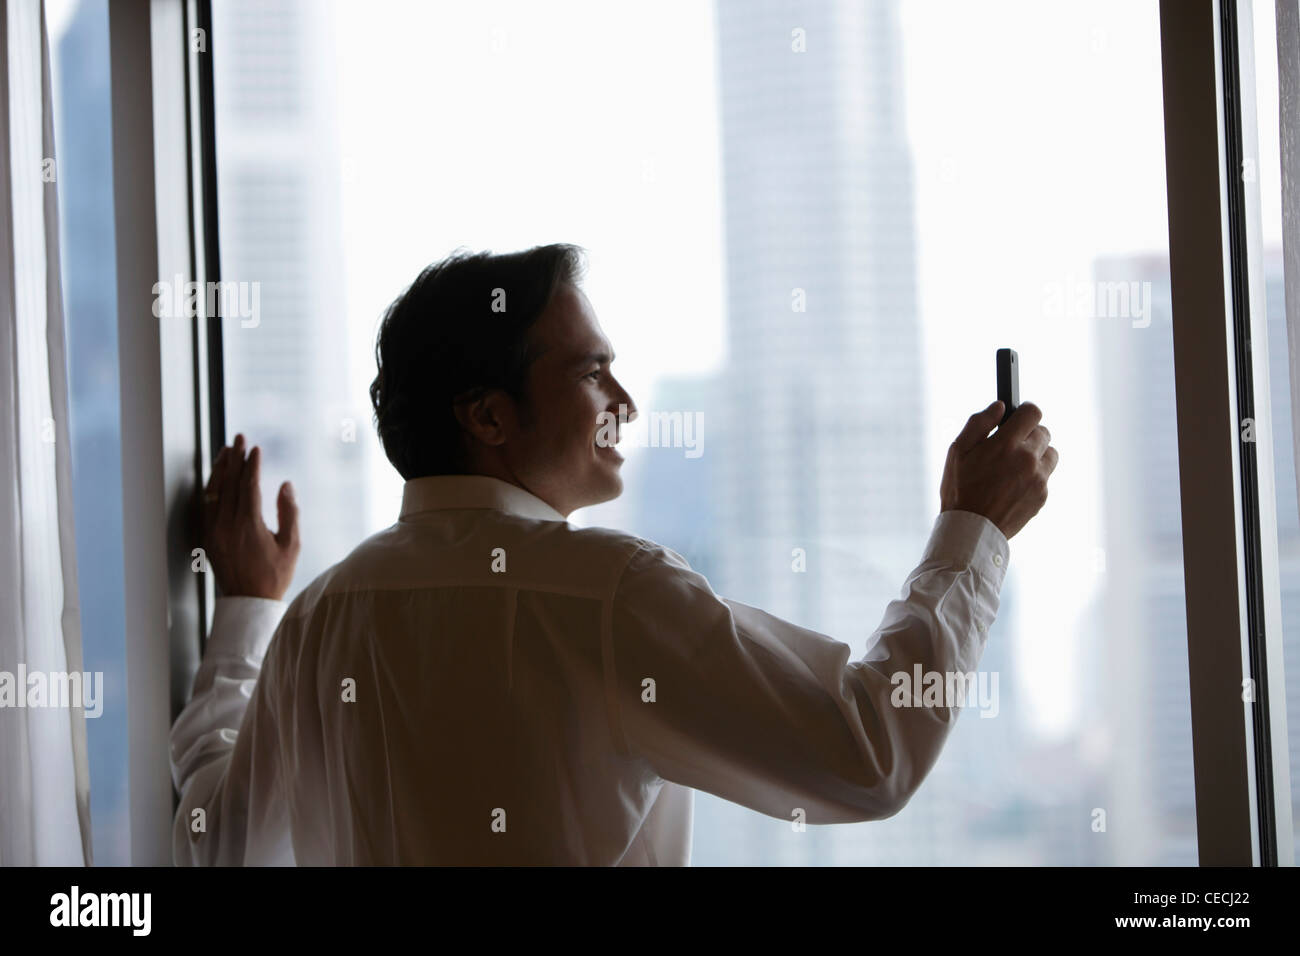 profile of businessman taking a photo with phone - Stock Image